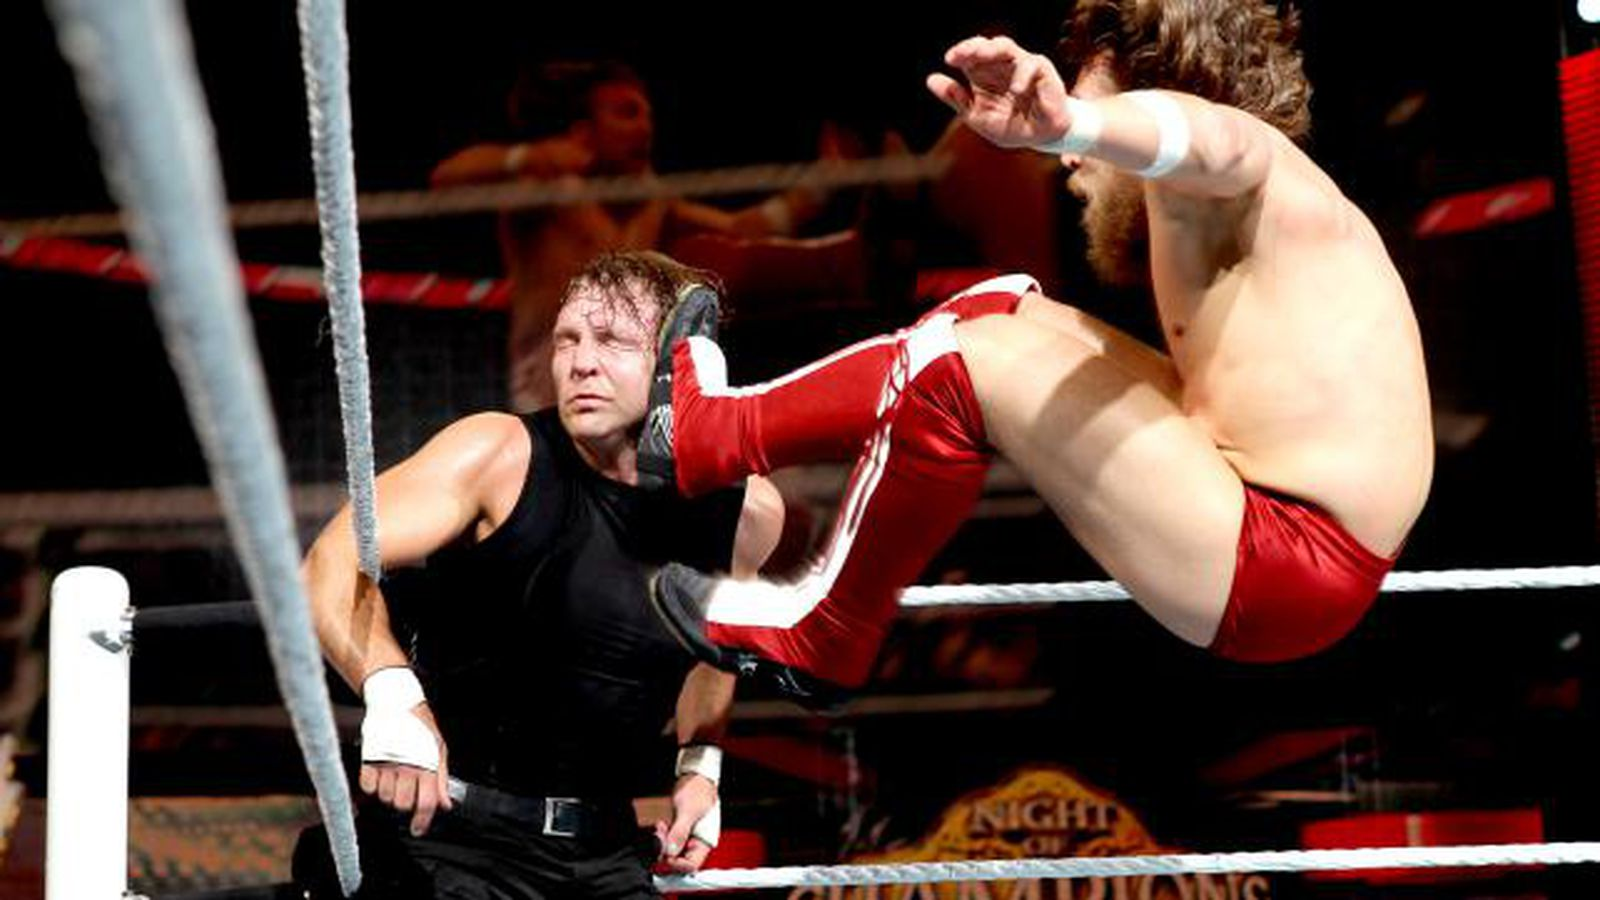 WWE Raw results and reactions from last night (Sept. 9): YES! NO! YES! - Cageside Seats